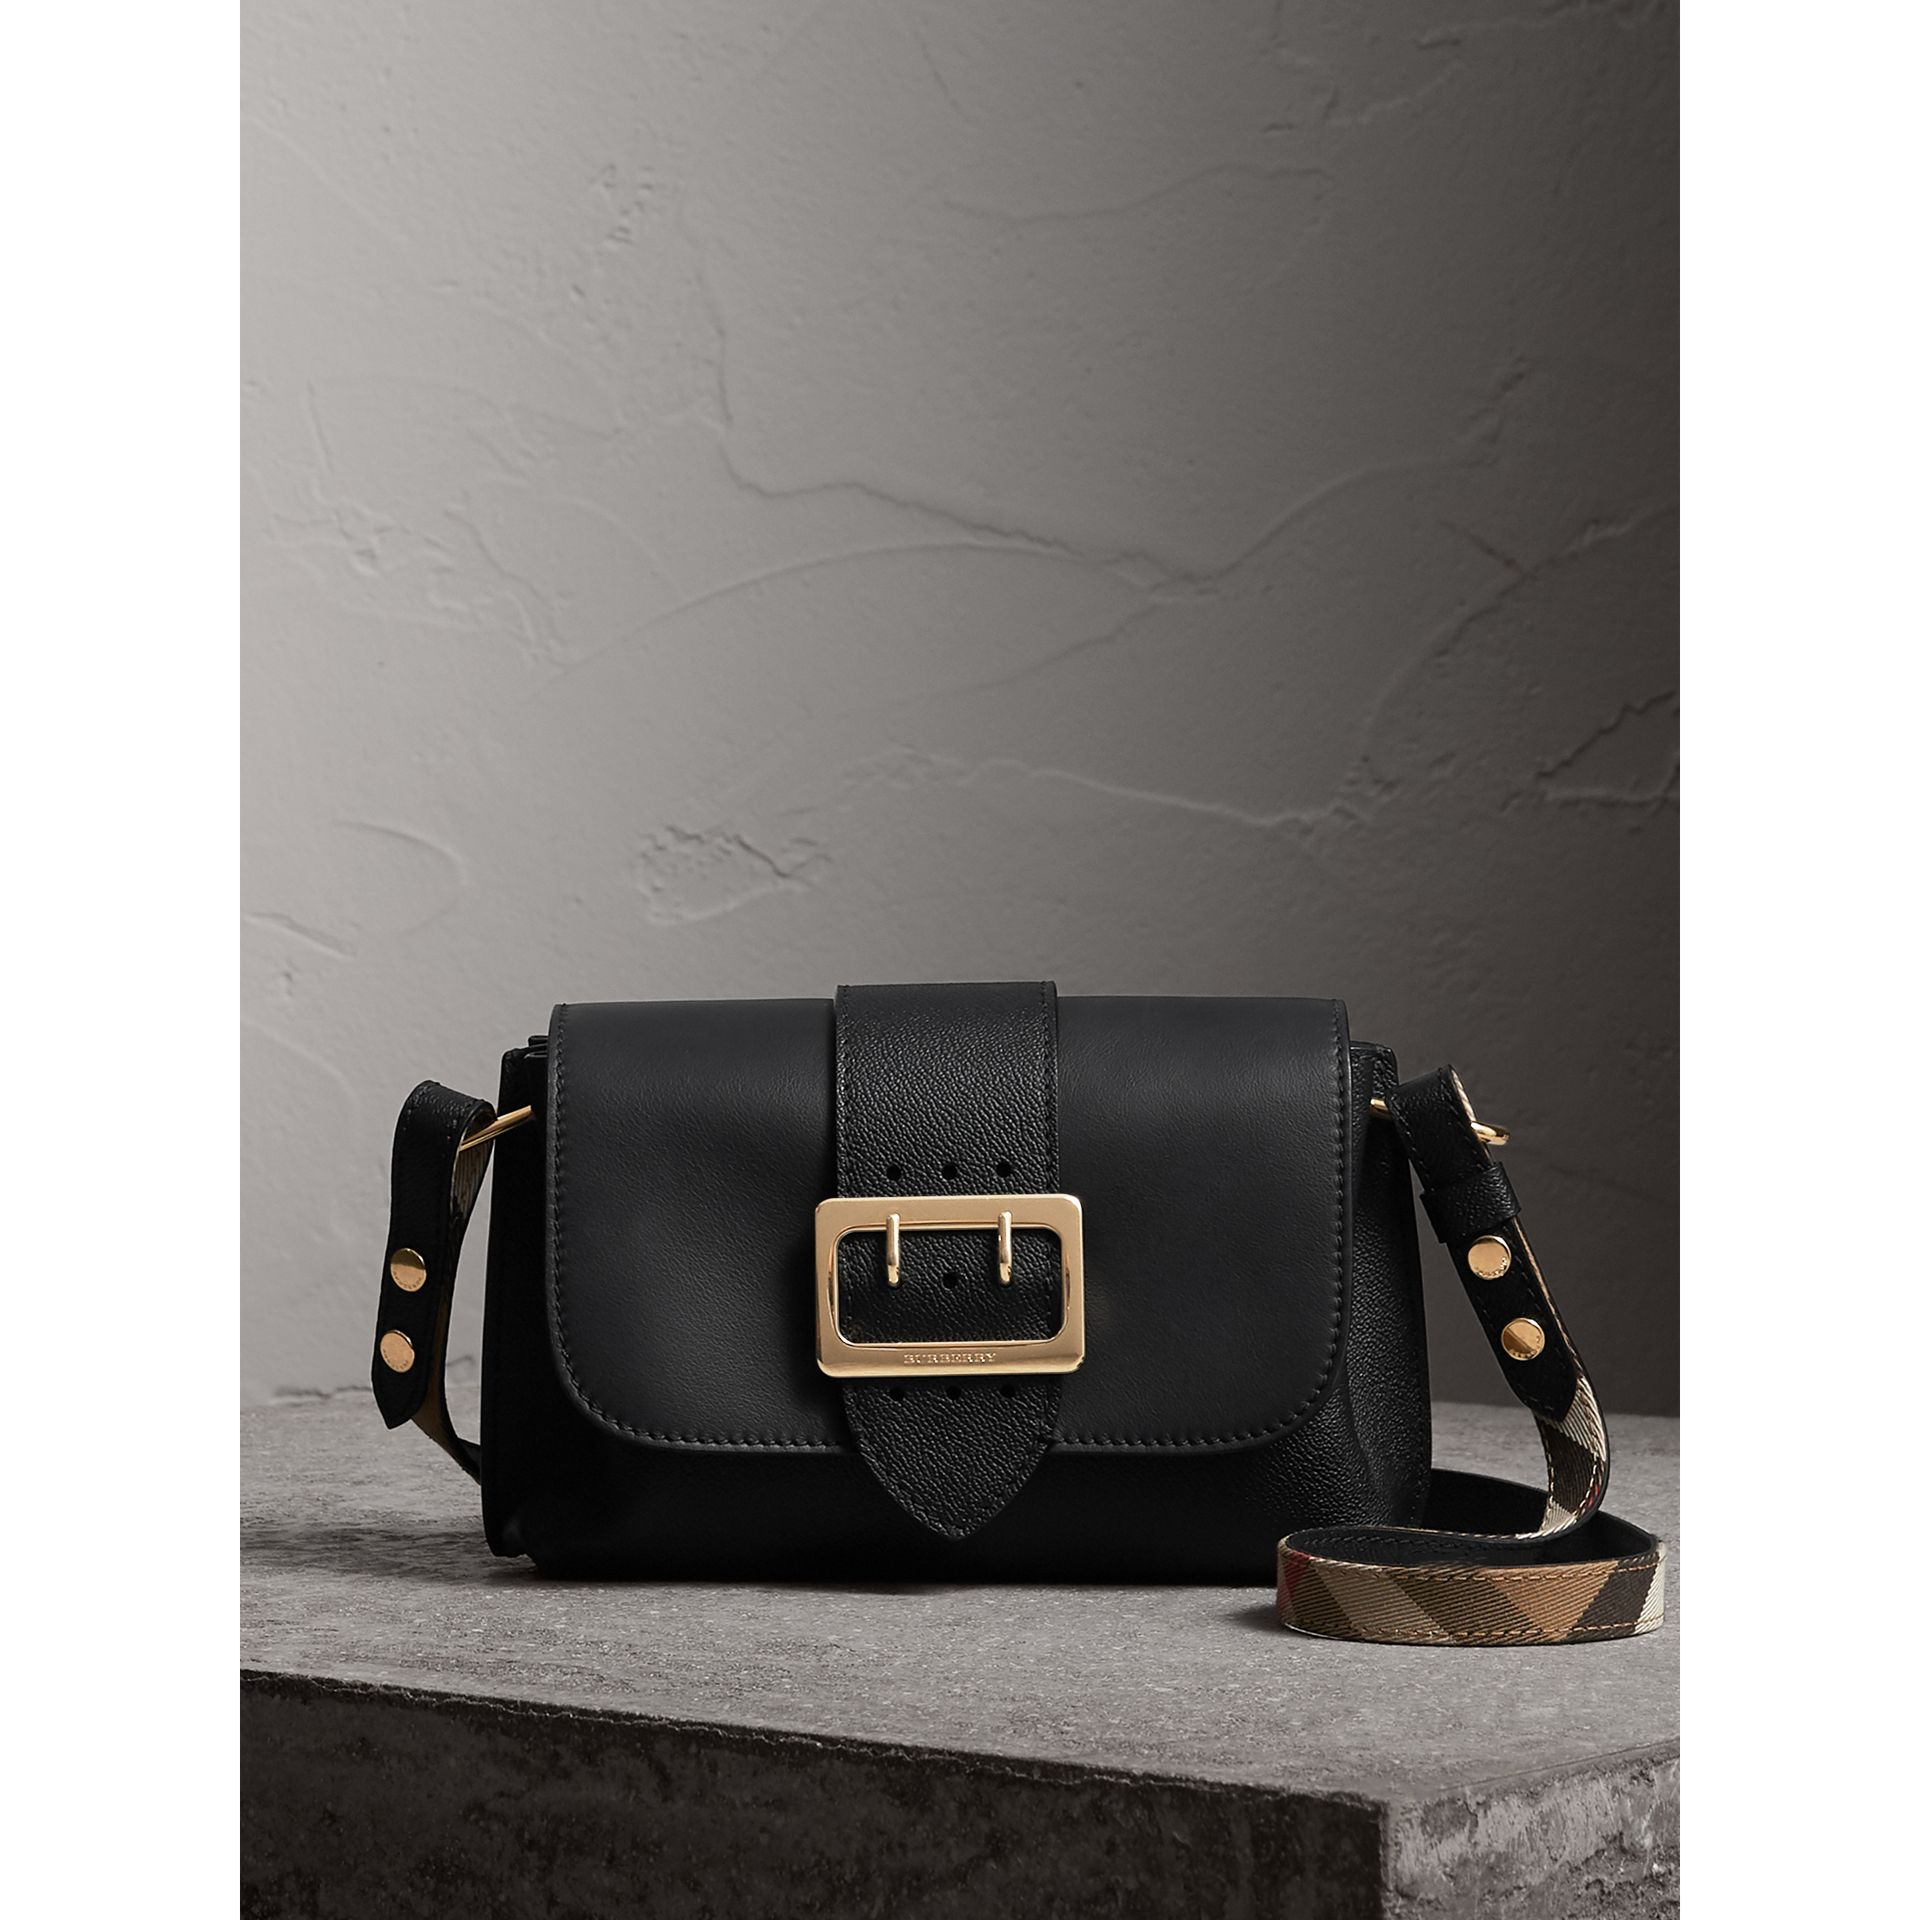 Sac à bandoulière The Buckle en cuir (Noir) - Femme | Burberry - photo de la galerie 1